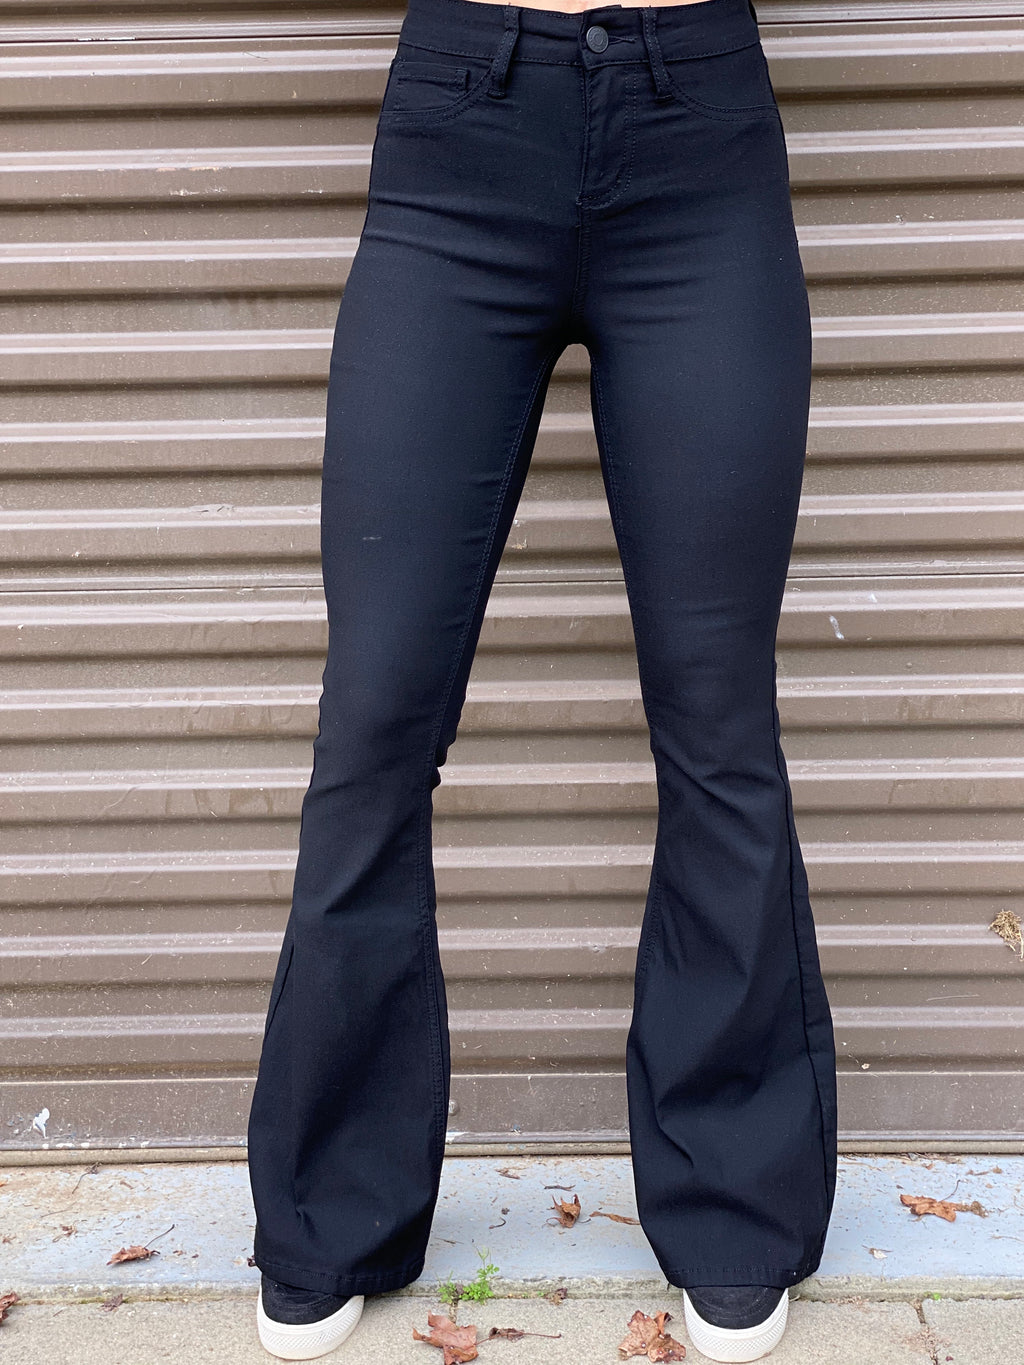 Hyperstretch for You Flares (Black)